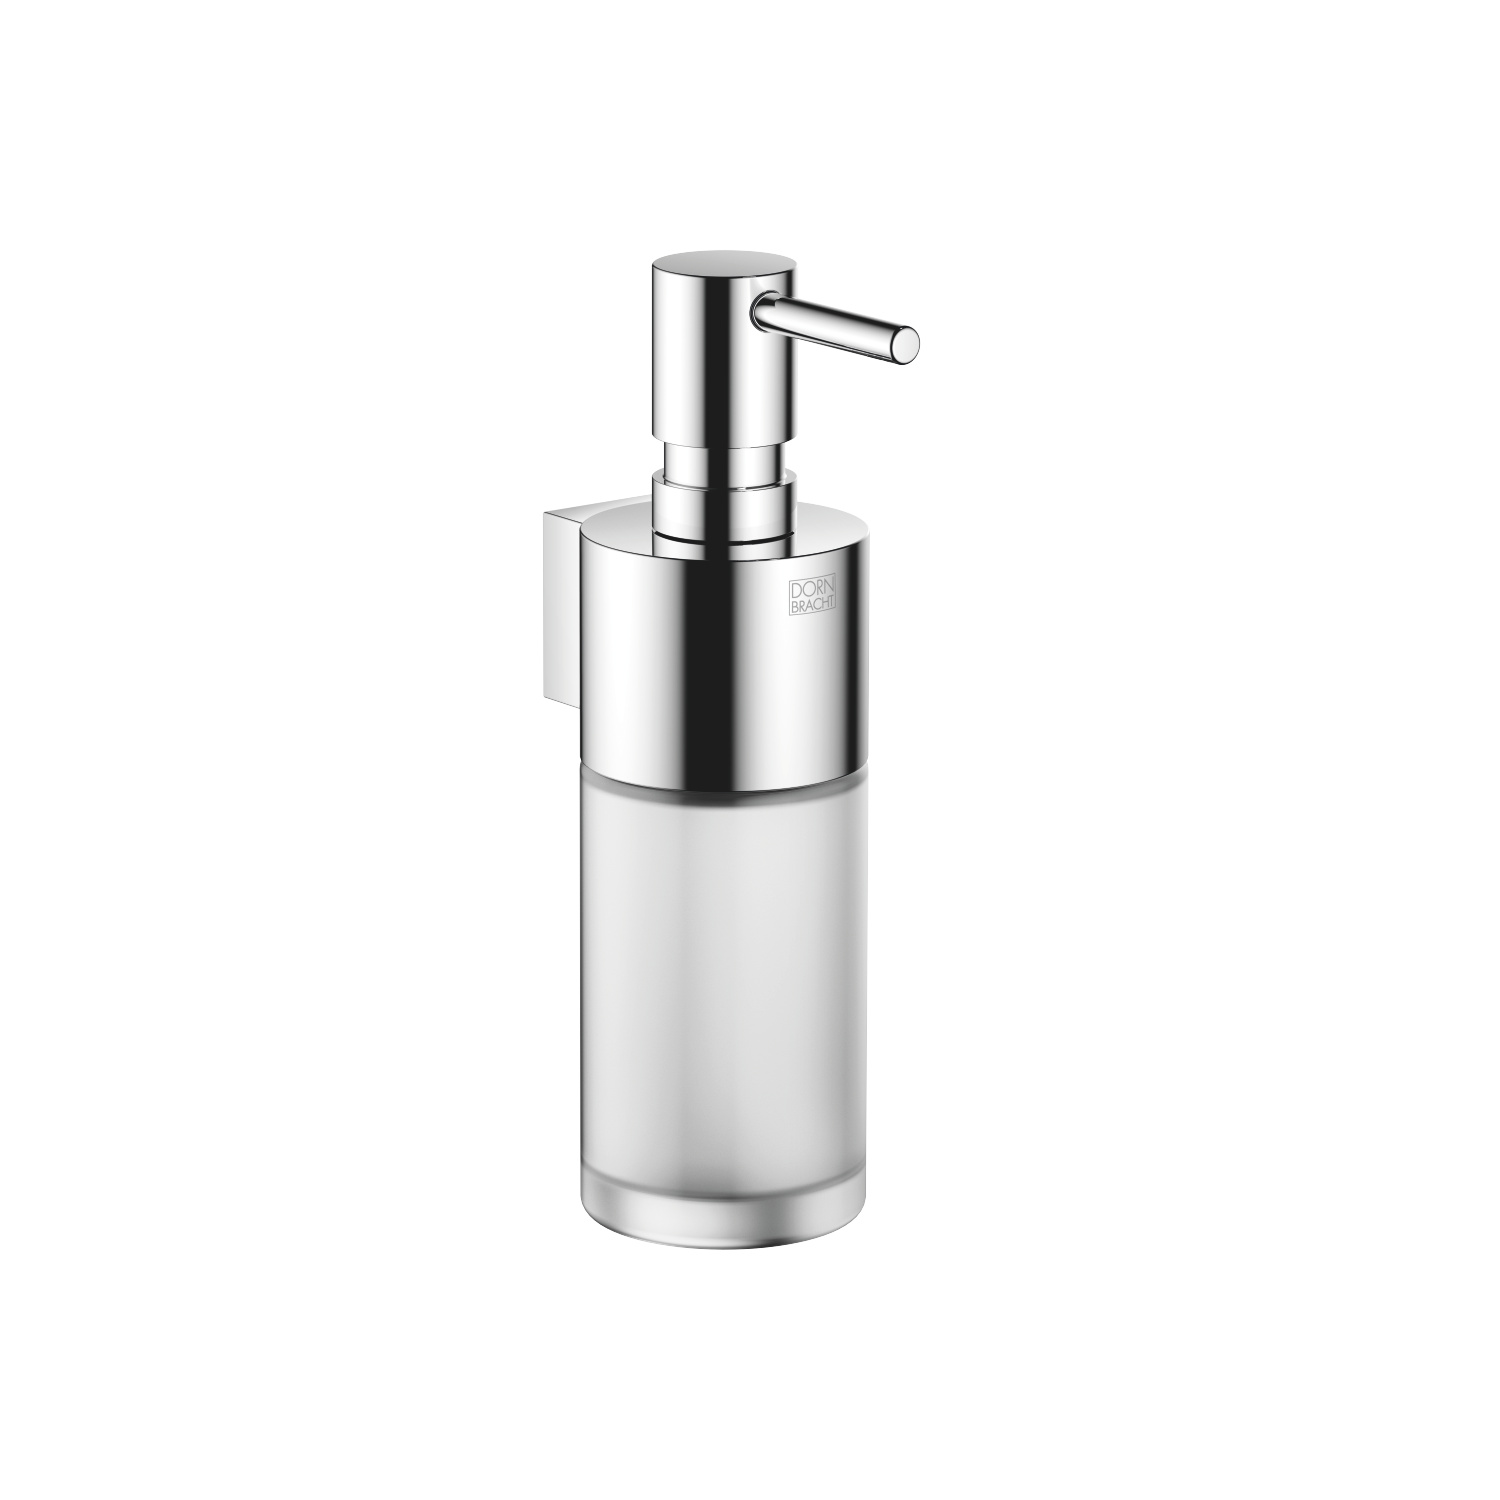 Dispenser wall model - polished chrome